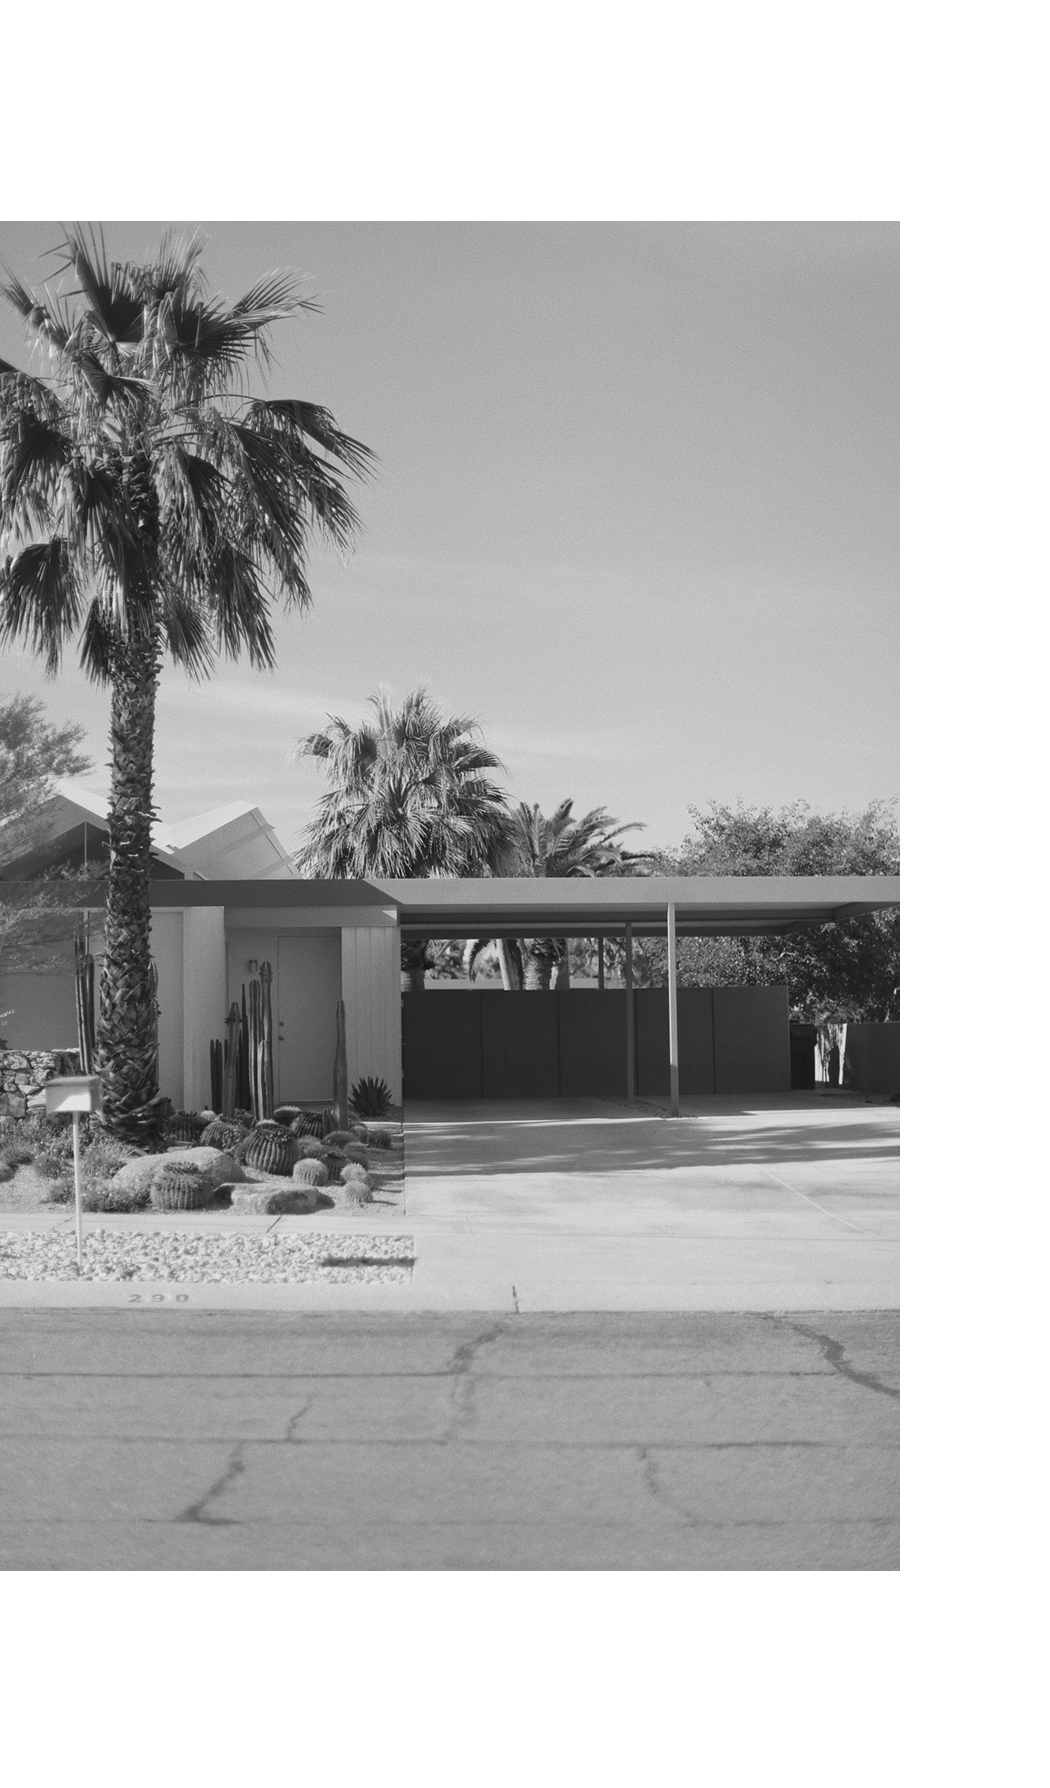 The Dashing Rider - PALM SPRINGS Architecture